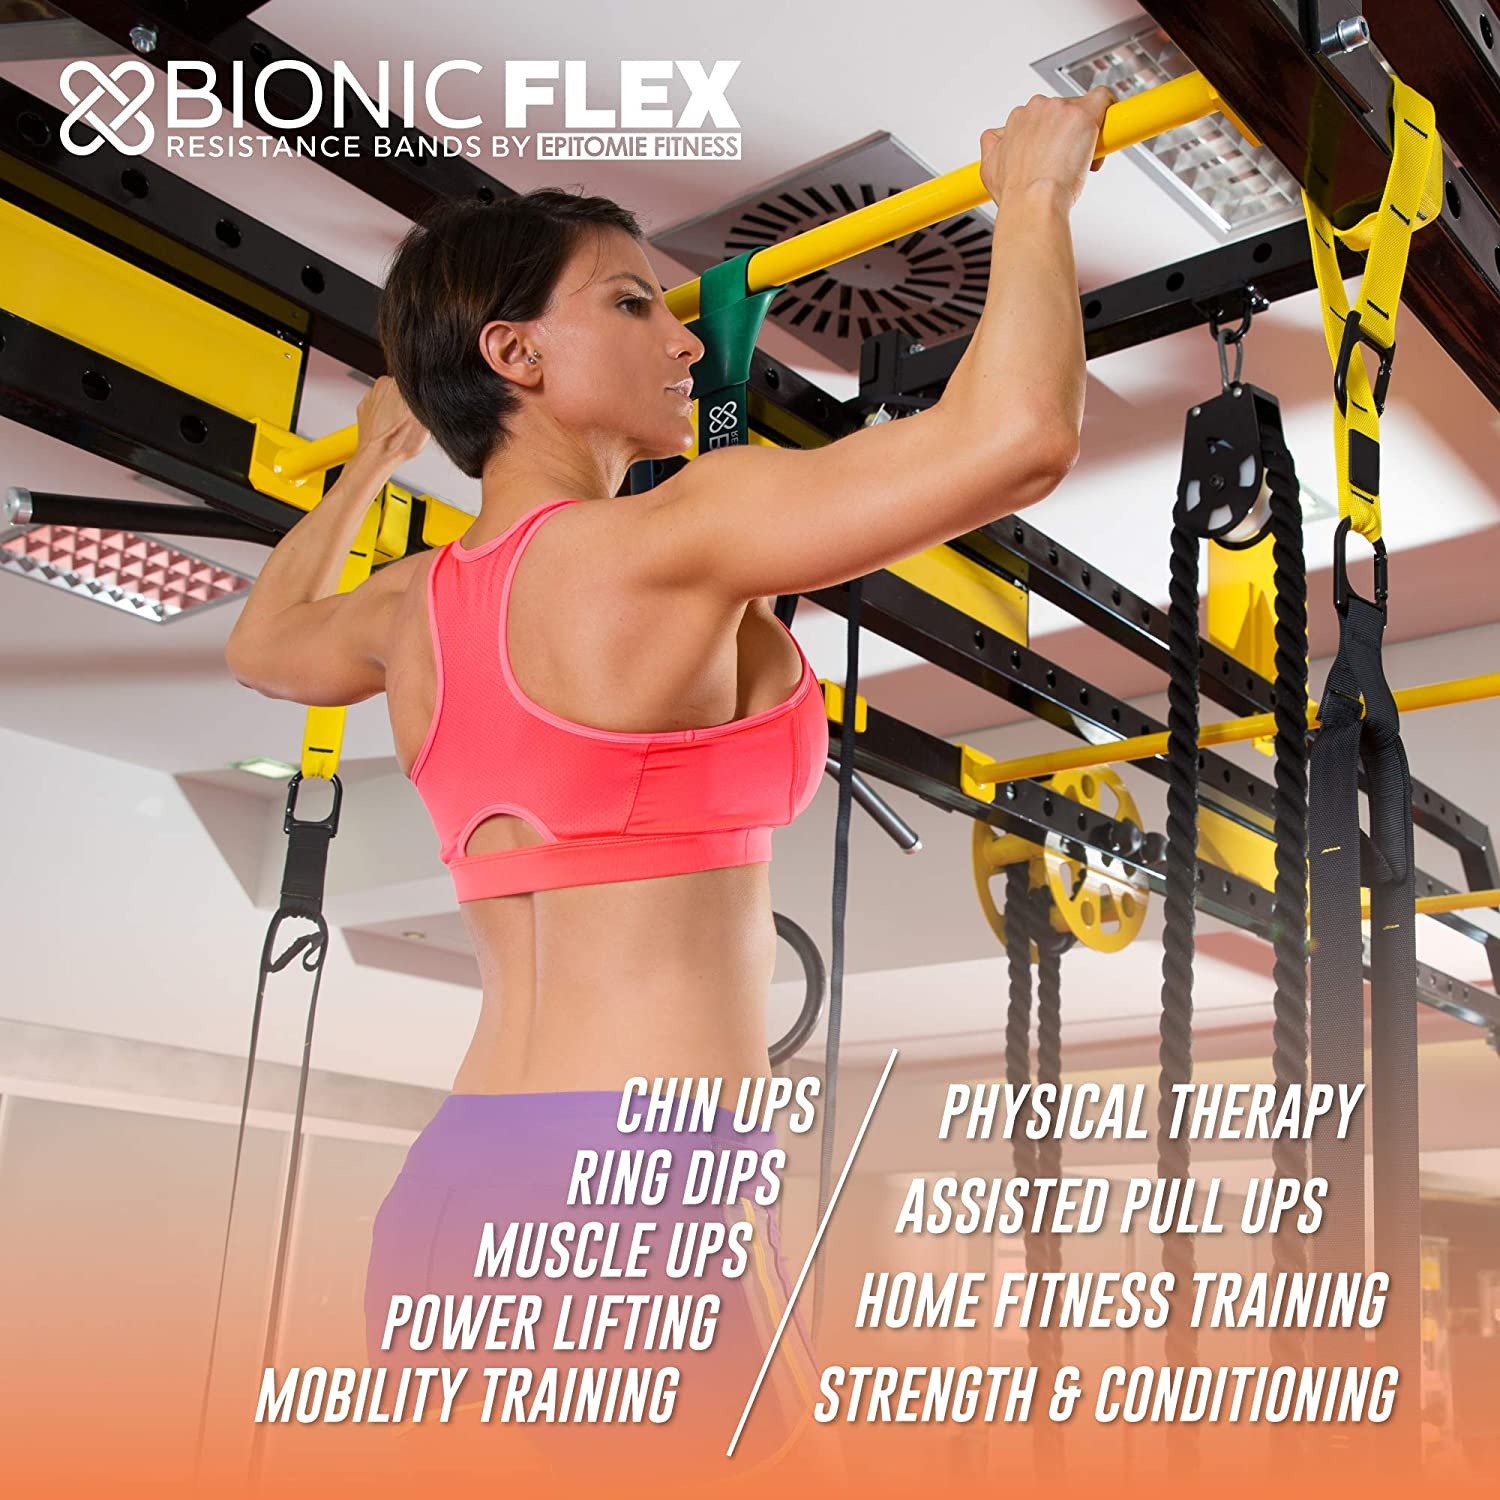 Epitomie Fitness Bionic Flex Pull Up Assistance Band – Premium Dual Layer Pull Up Assist Bands for Strength Training Exercise, Physical Therapy, Powerlifting, Stretching – Set of 4 Resistance Bands : Sports & Outdoors